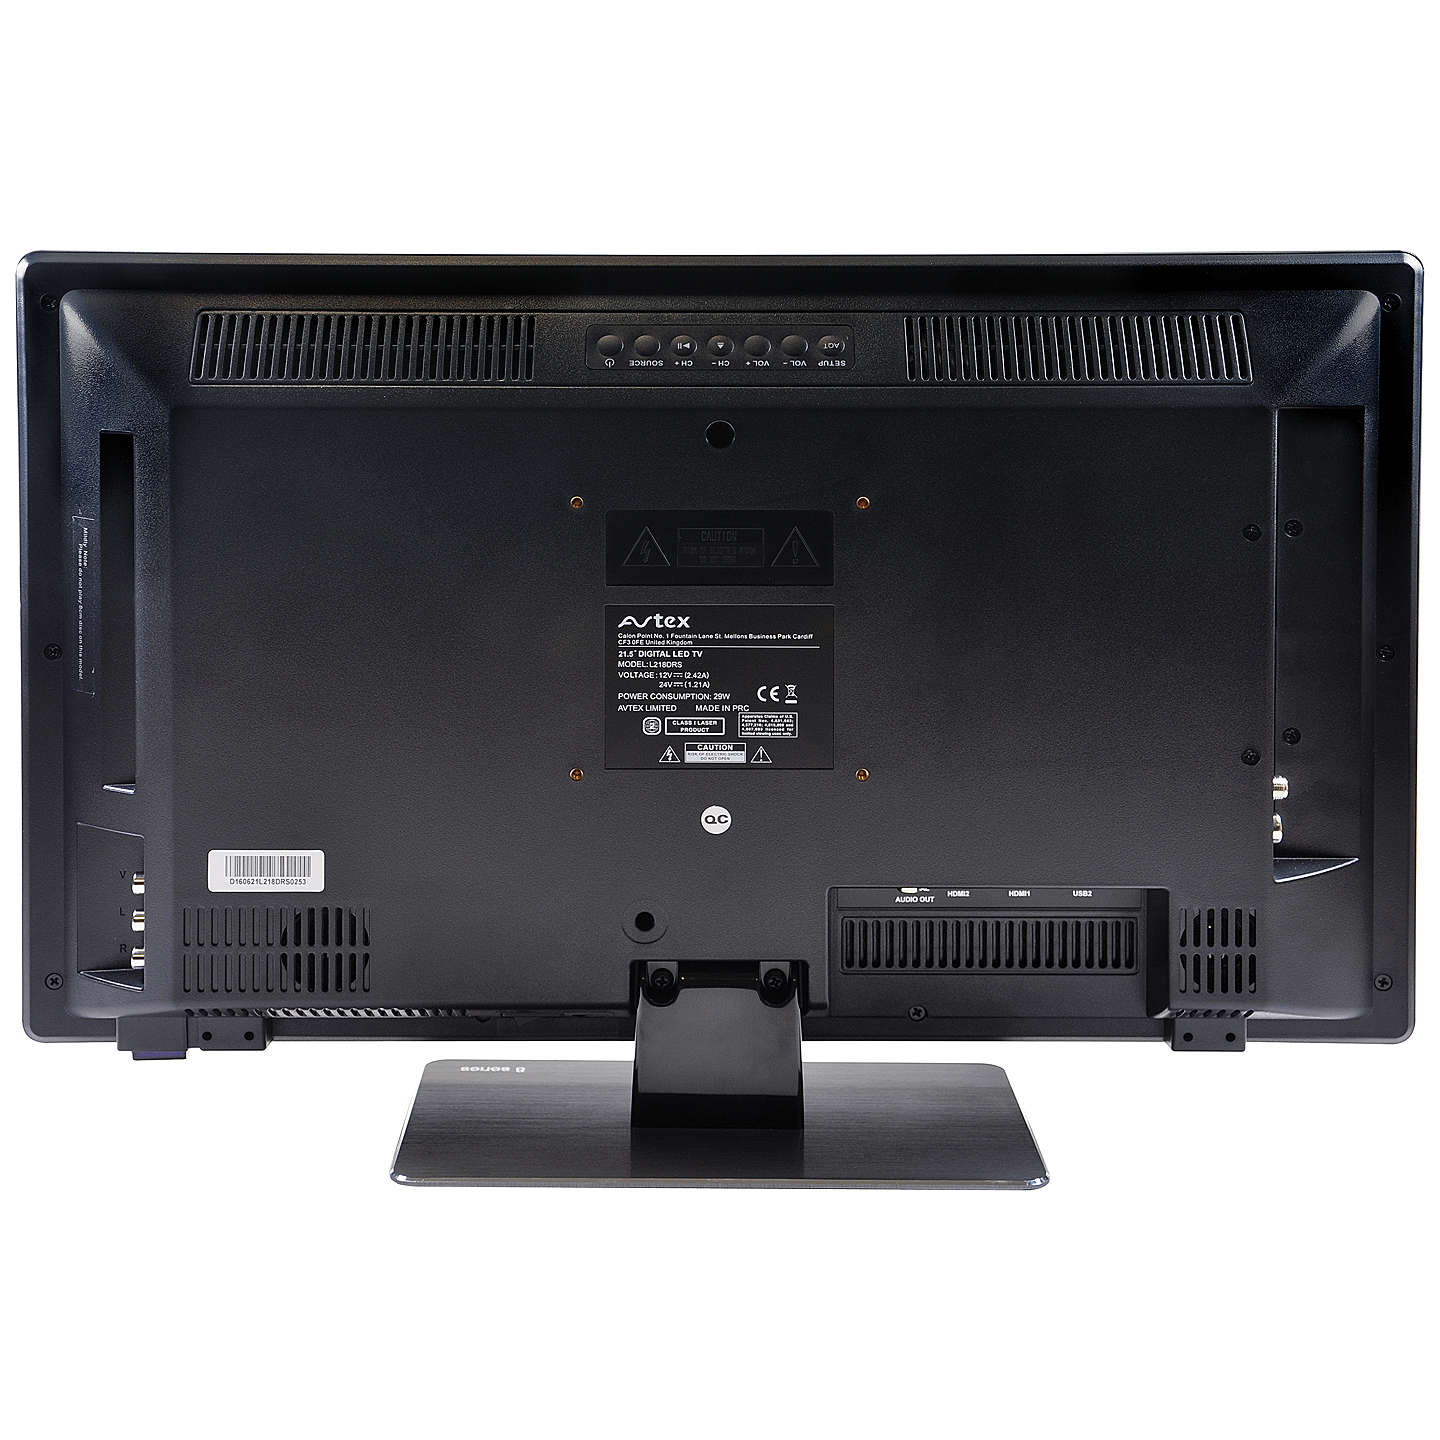 "BuyAvtex L218DRS LED Full HD 1080p TV/DVD Combi, 21.5"" with Freeview HD Online at johnlewis.com"